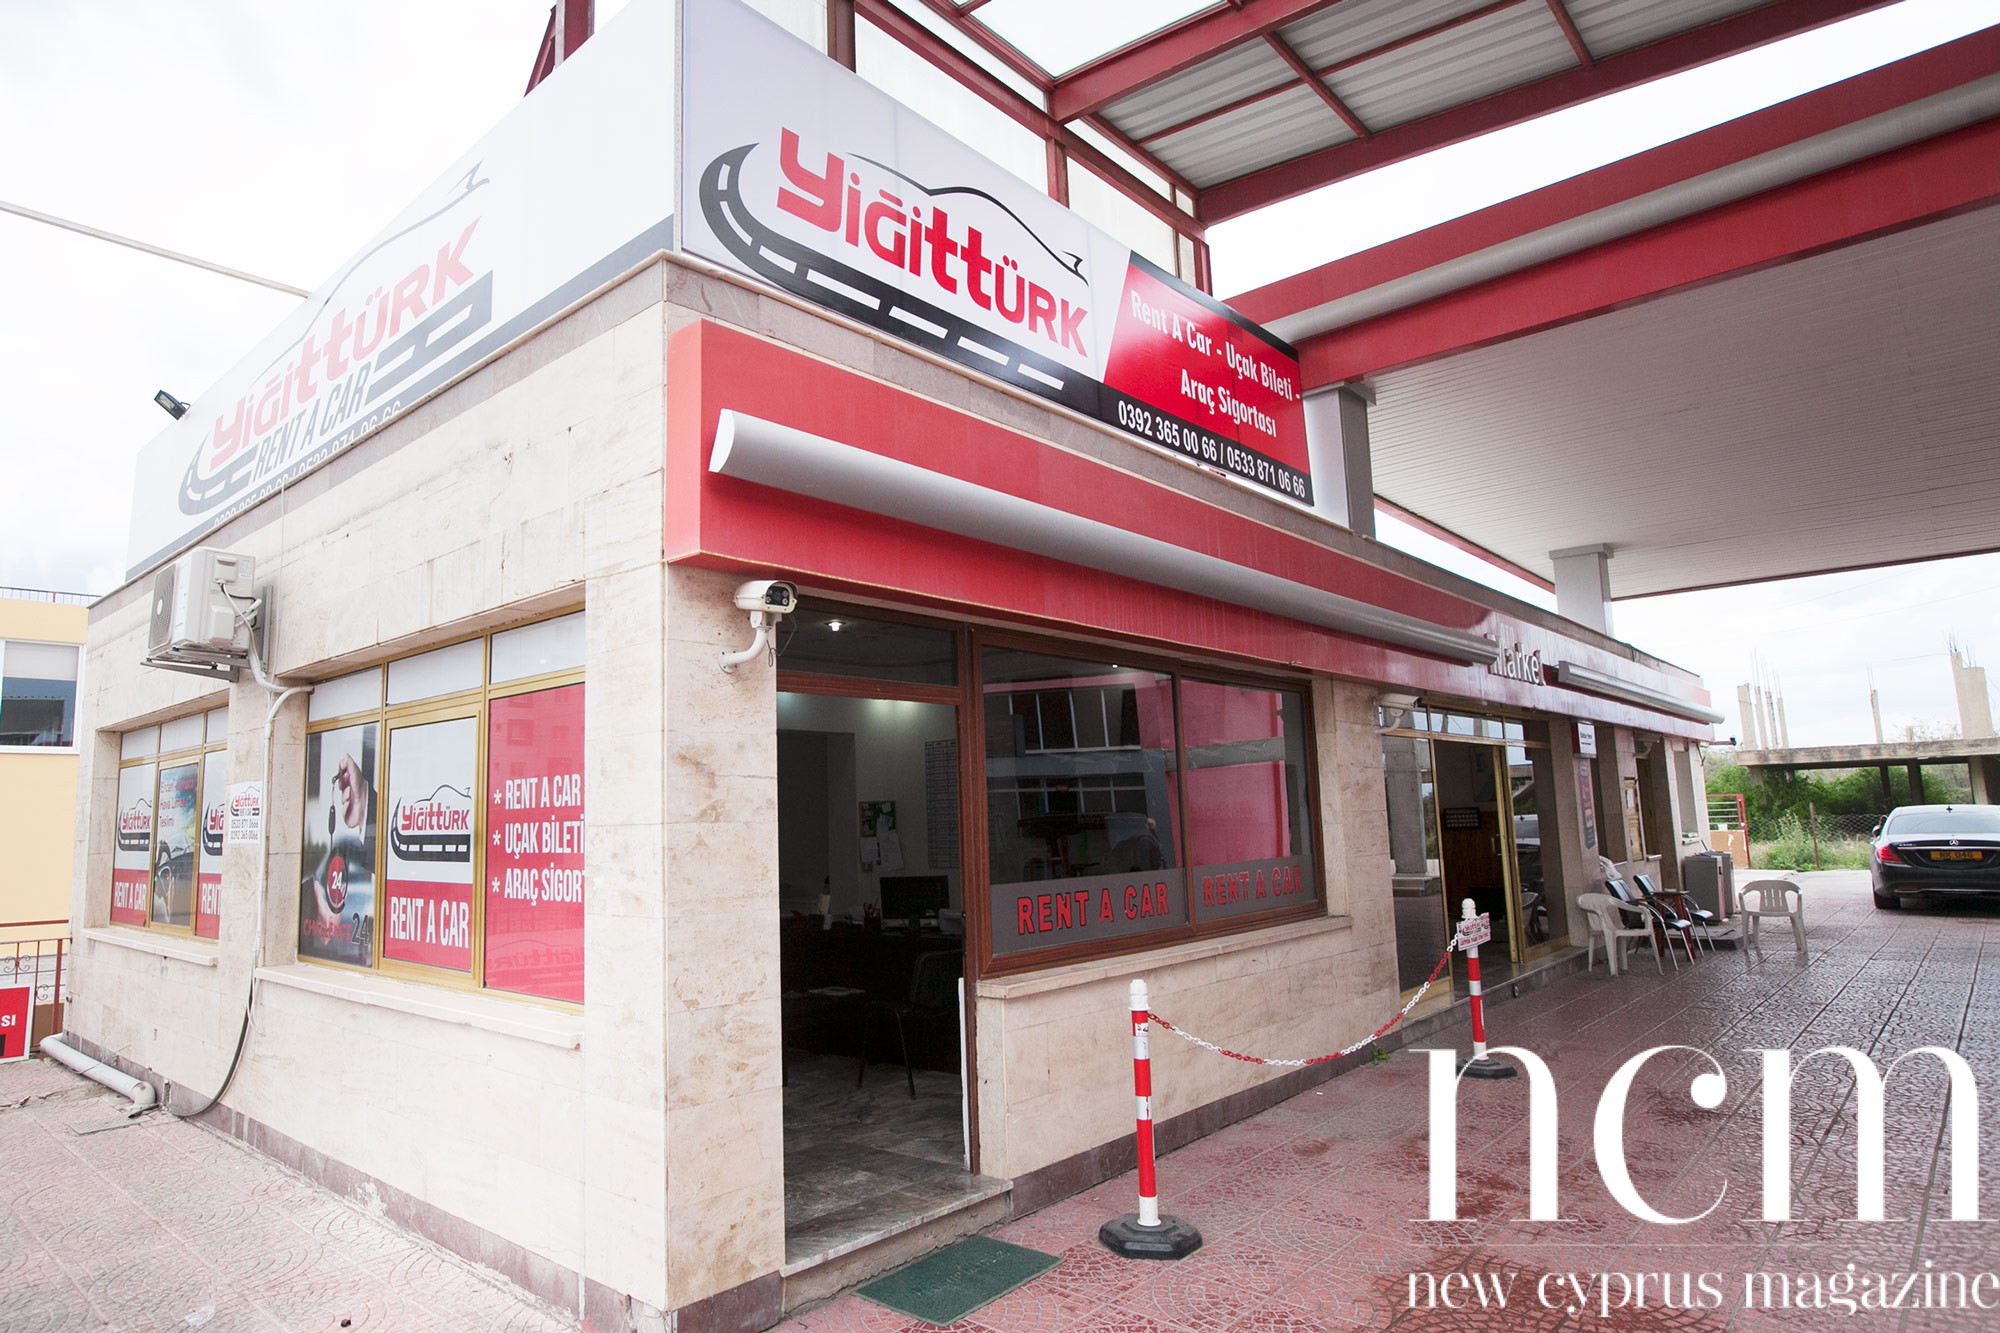 North Cyprus Magazine Yiggiturk Car Rental